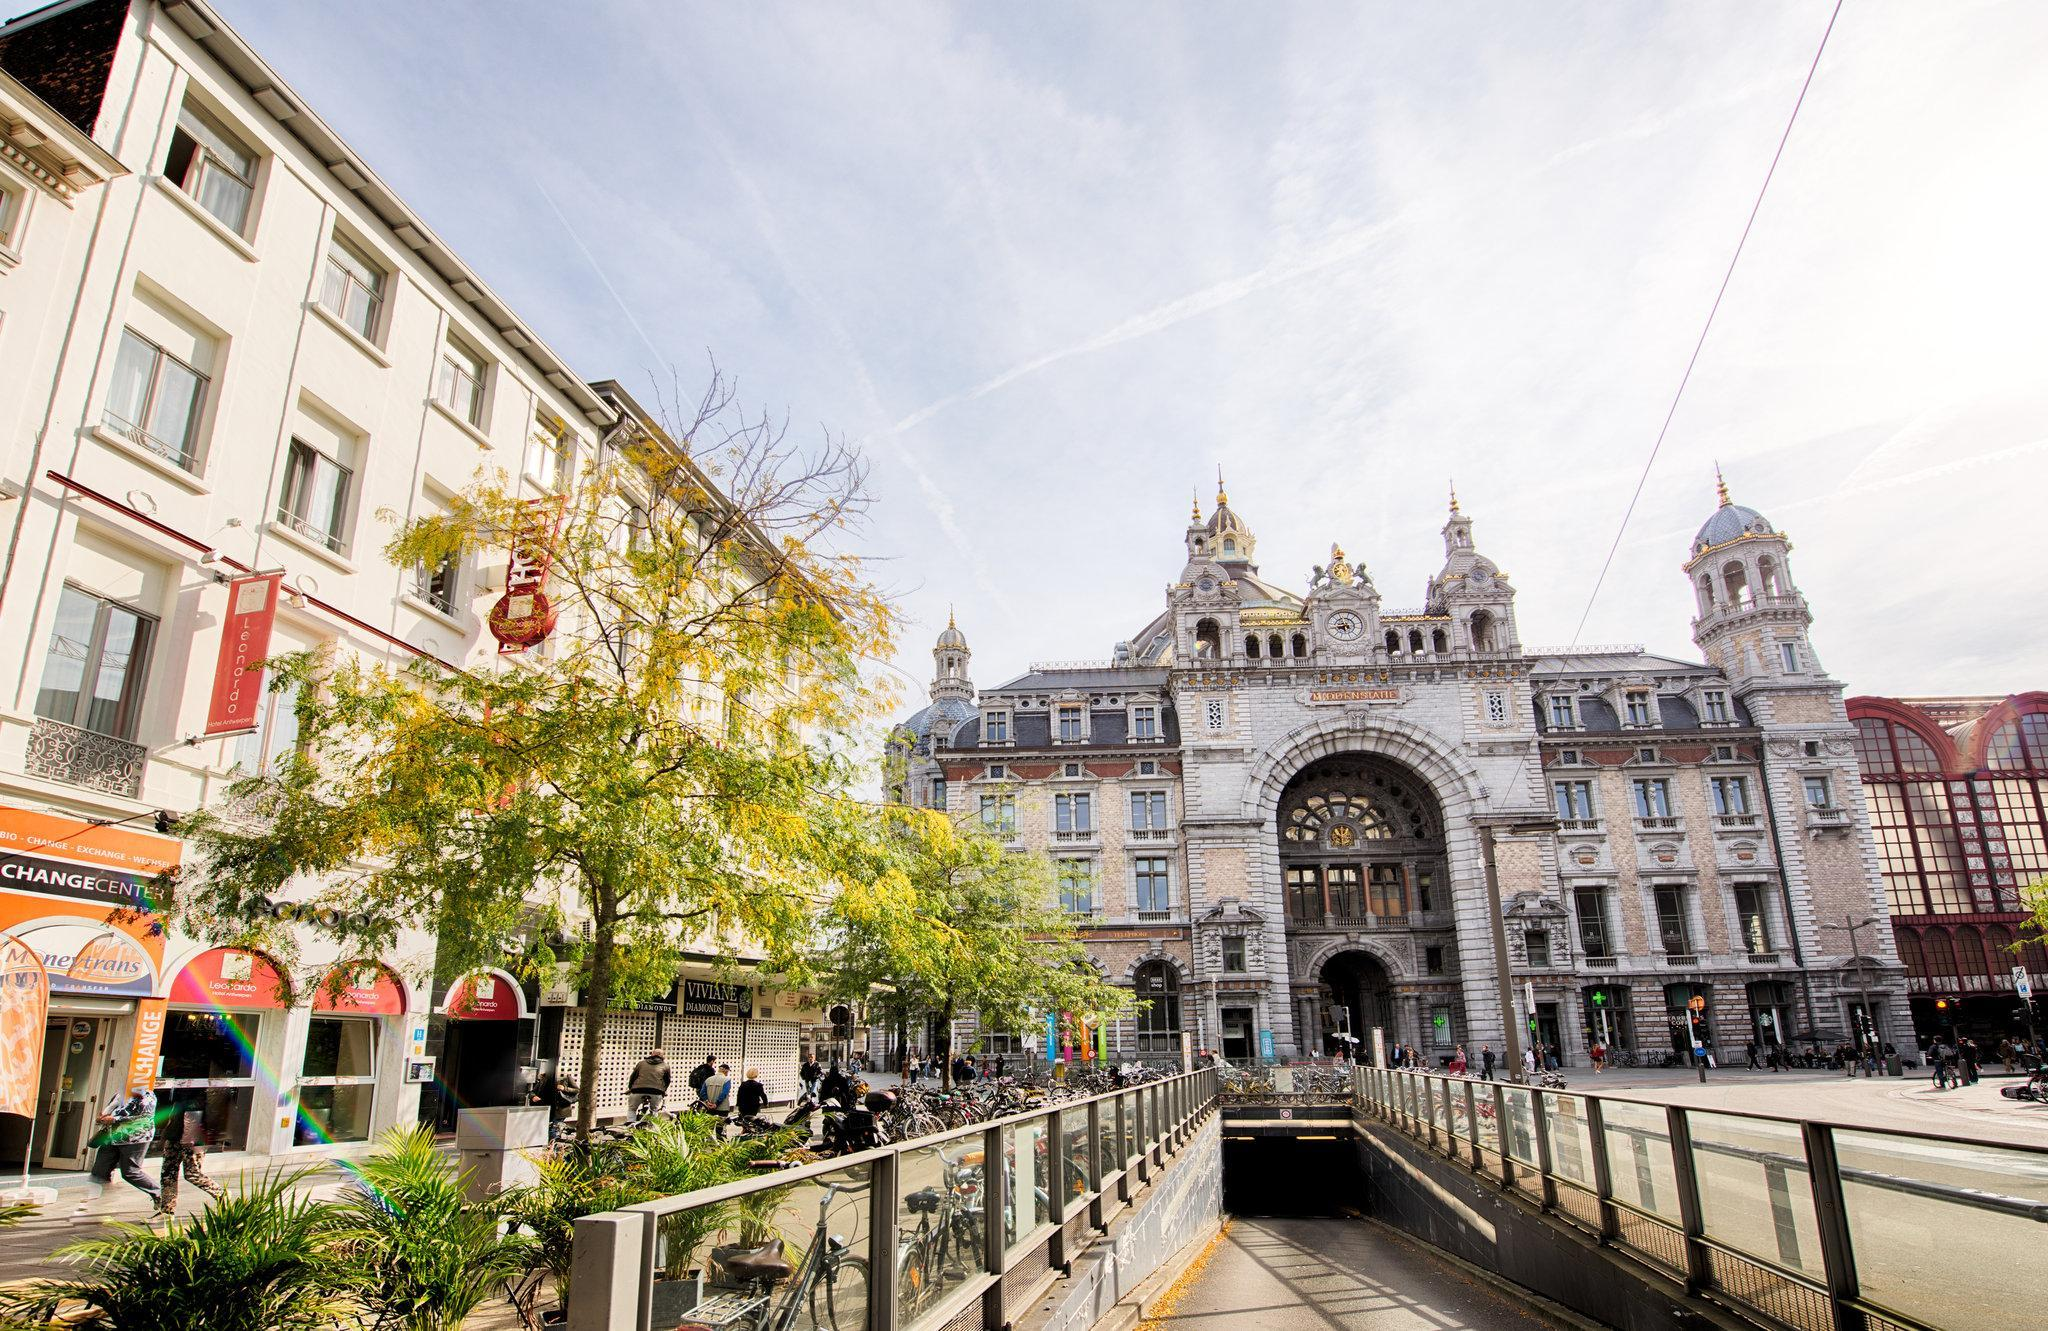 Best Hotels in Antwerp, Belgium: Cheap to Luxury Accommodations